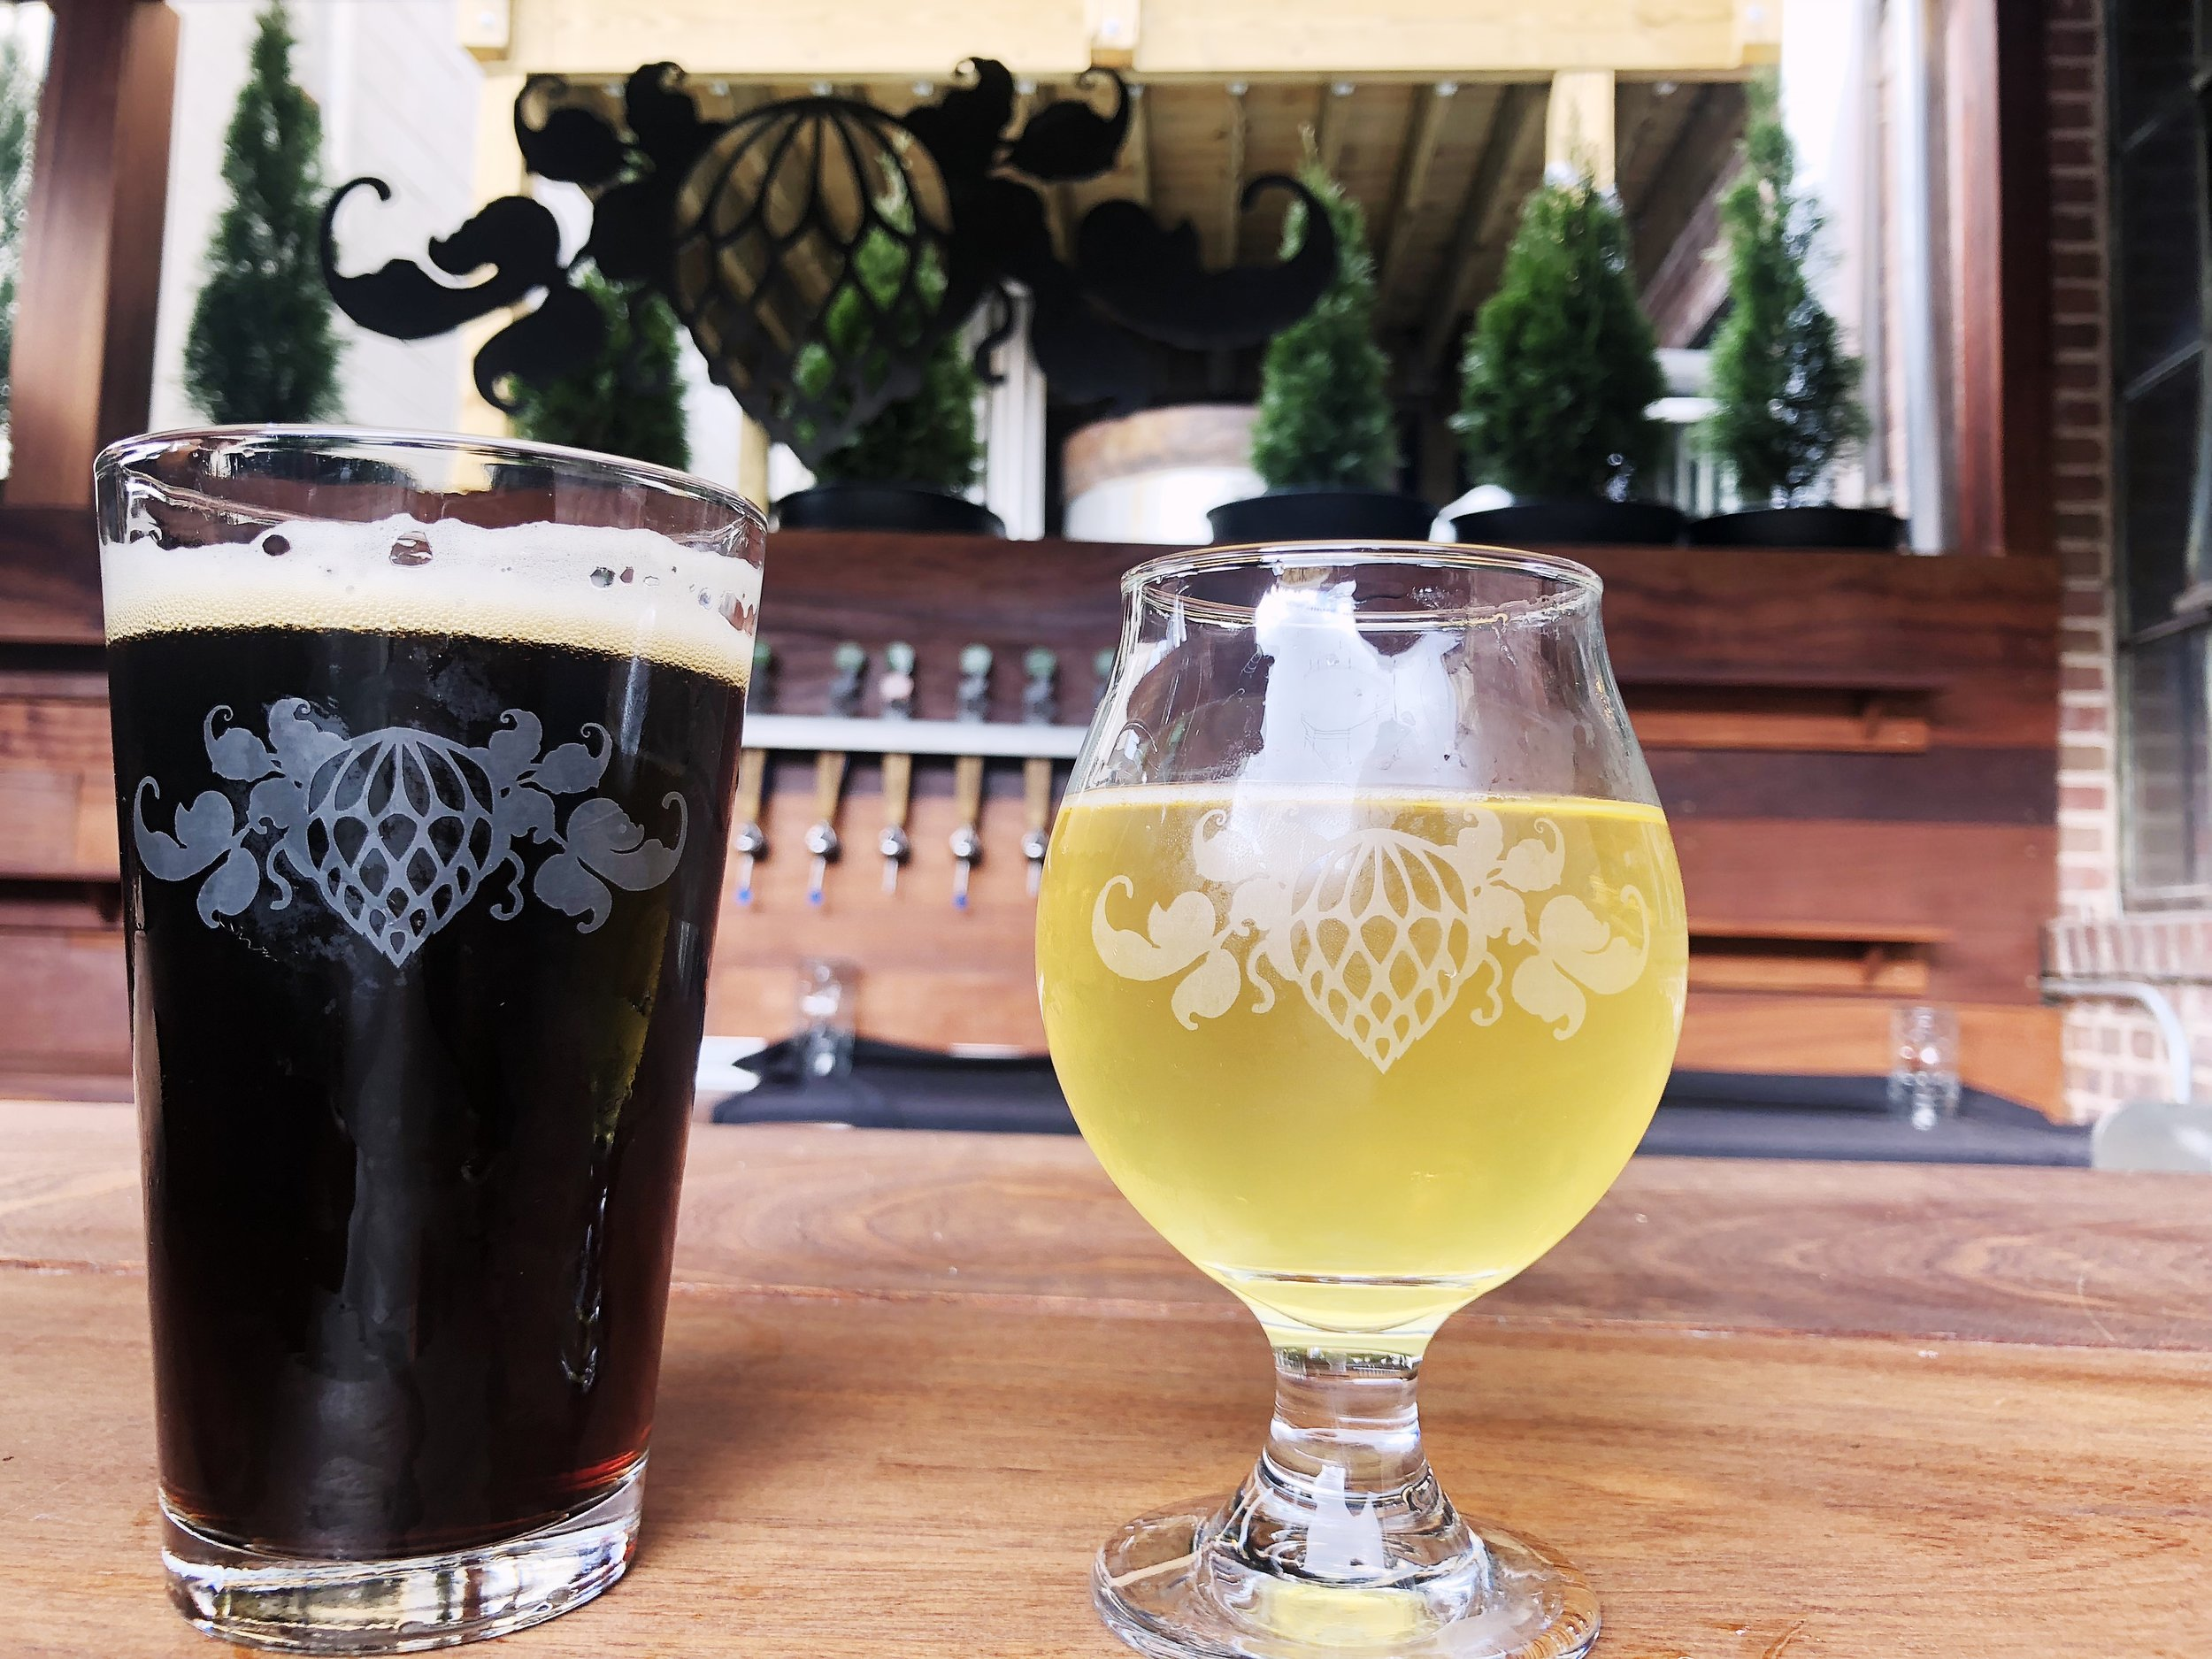 Wicked weed brewery - asheville, nc